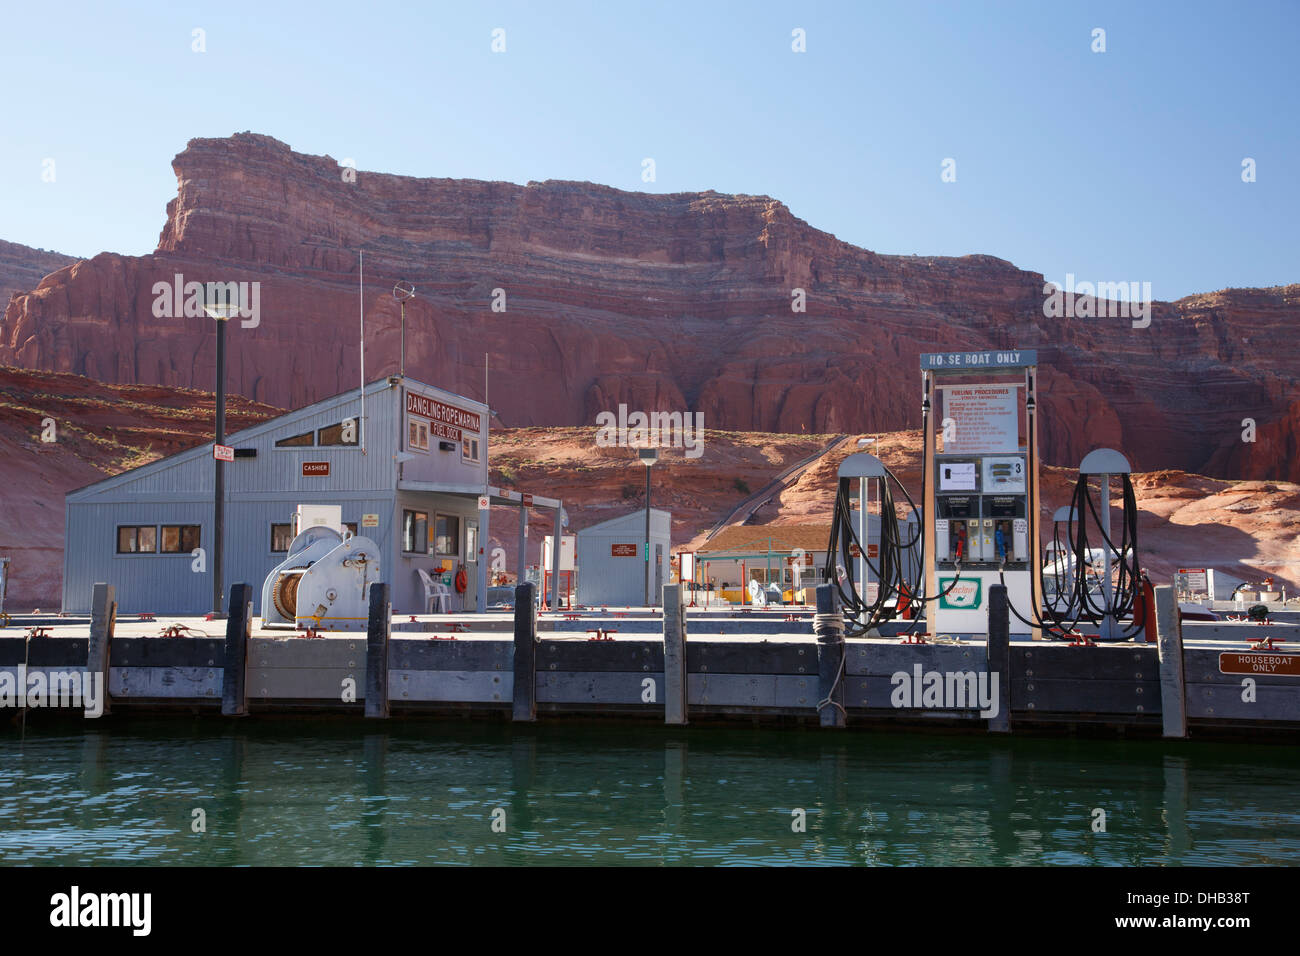 Dangling Rope Marina, le Lac Powell, Glen Canyon National Recreation Area, Page, Arizona. Photo Stock